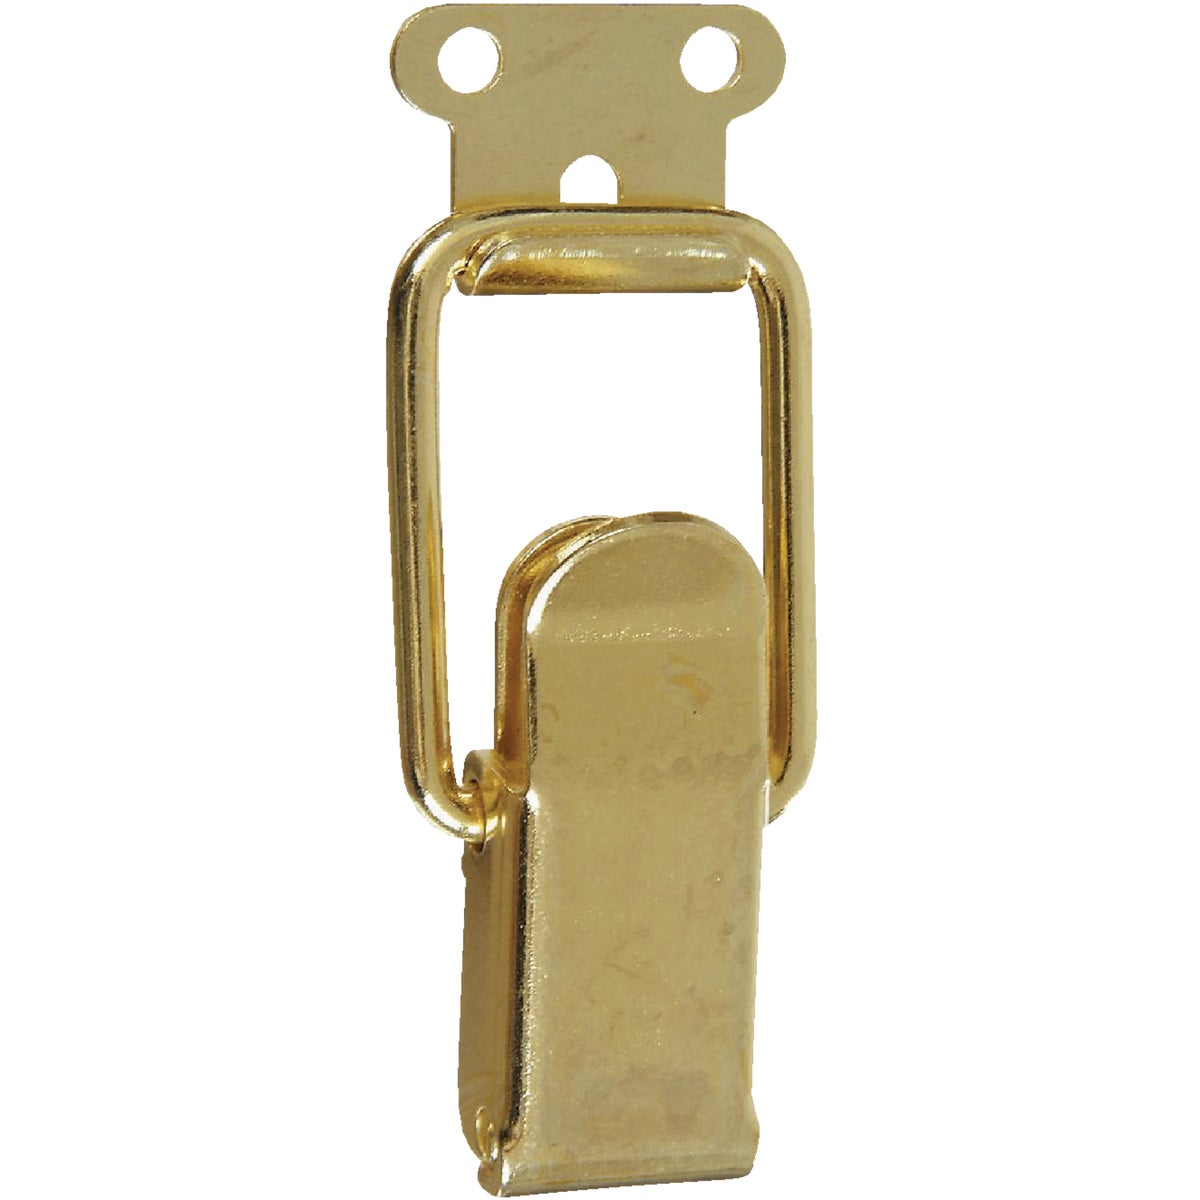 BRASS DRAW CATCH - N208561 by National Mfg Co